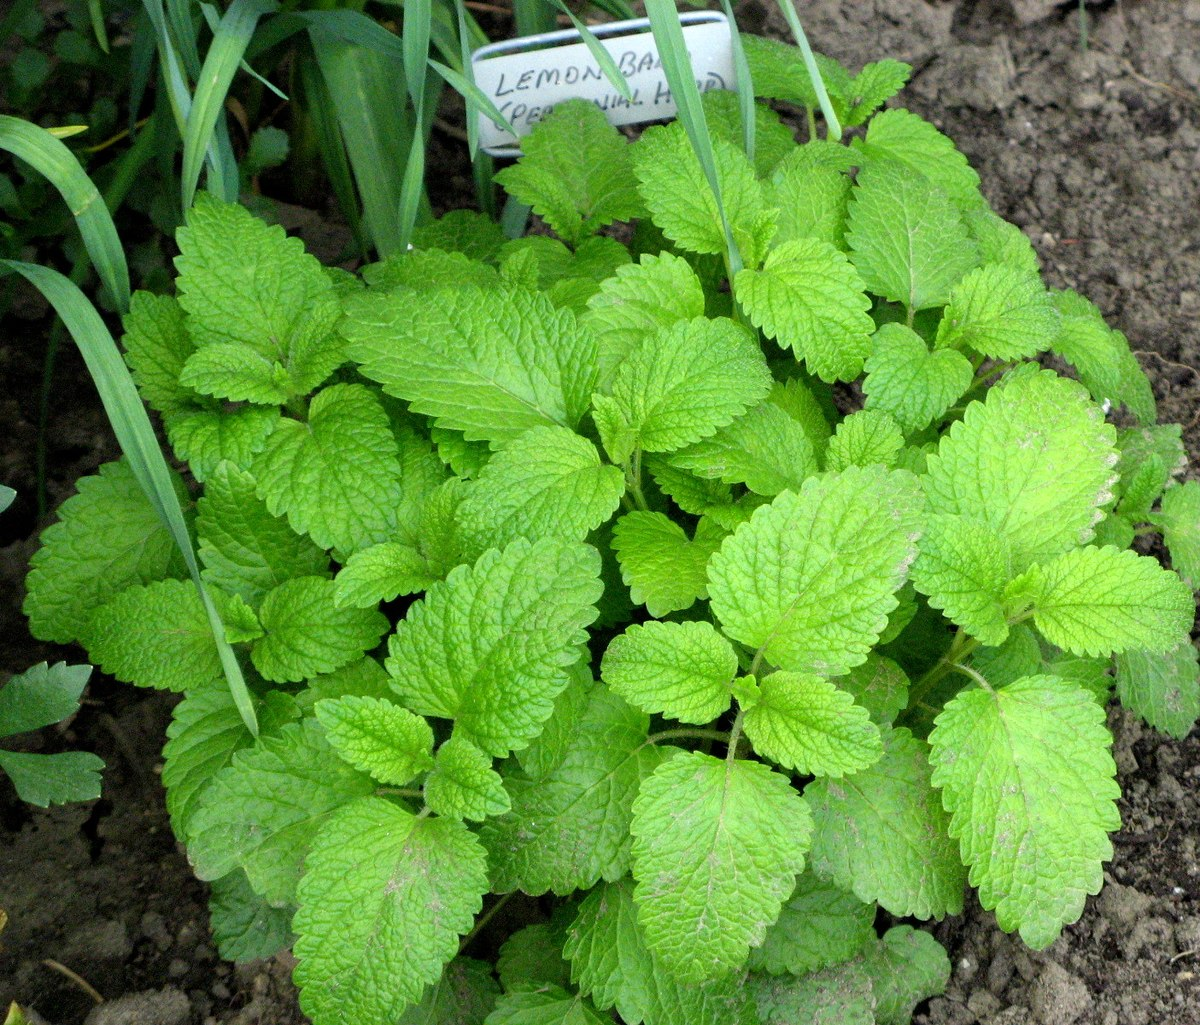 Lemon Balm for a tea herb garden